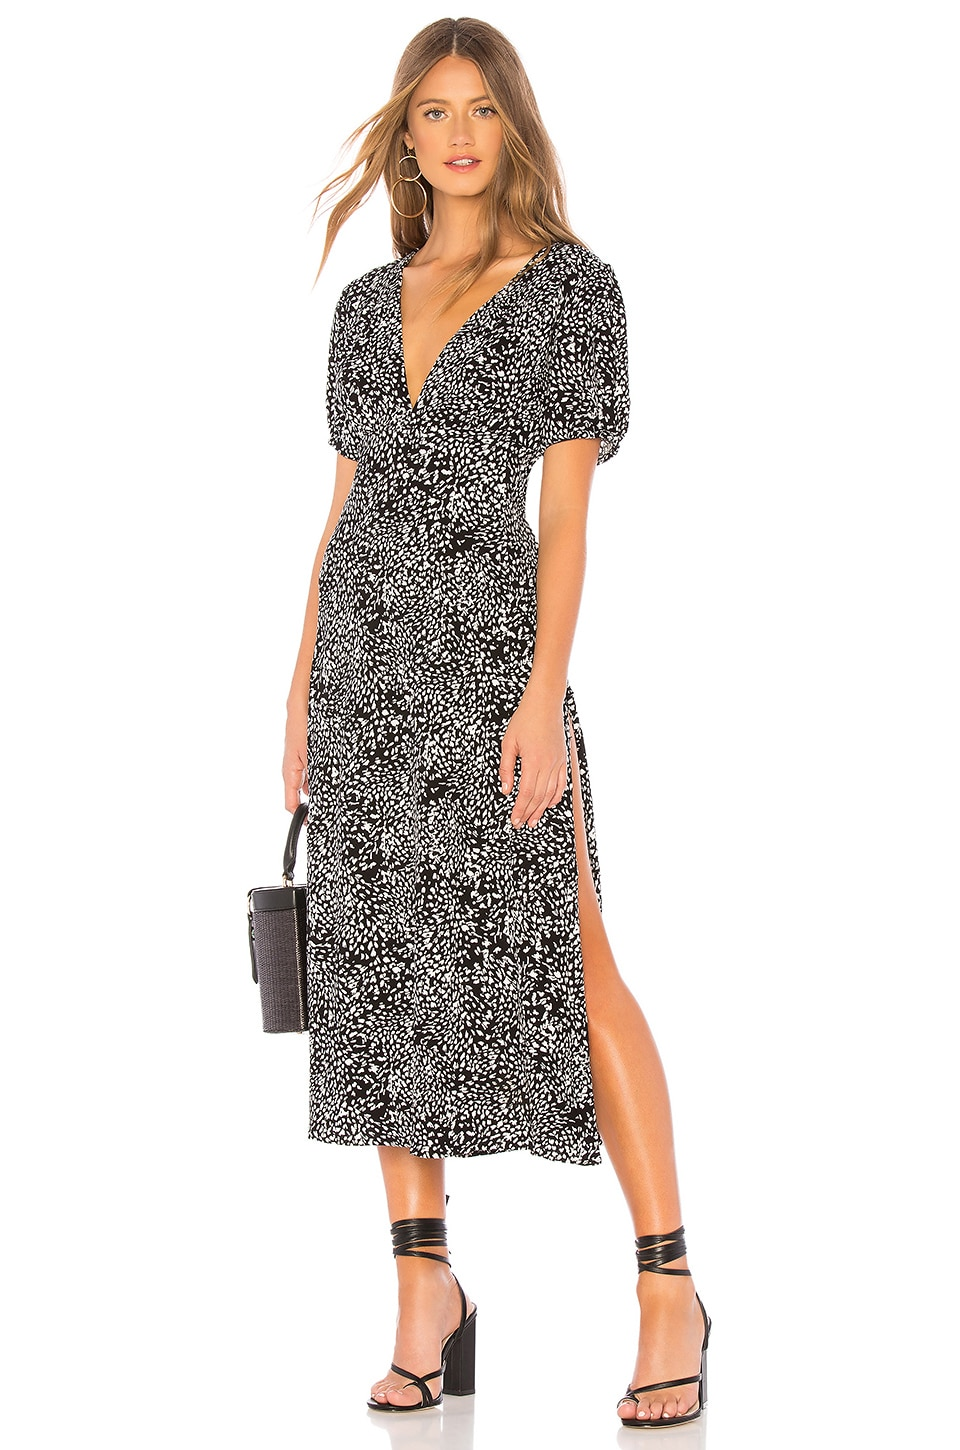 FREE PEOPLE Looking For Love Printed Woven Midi Dress in Black